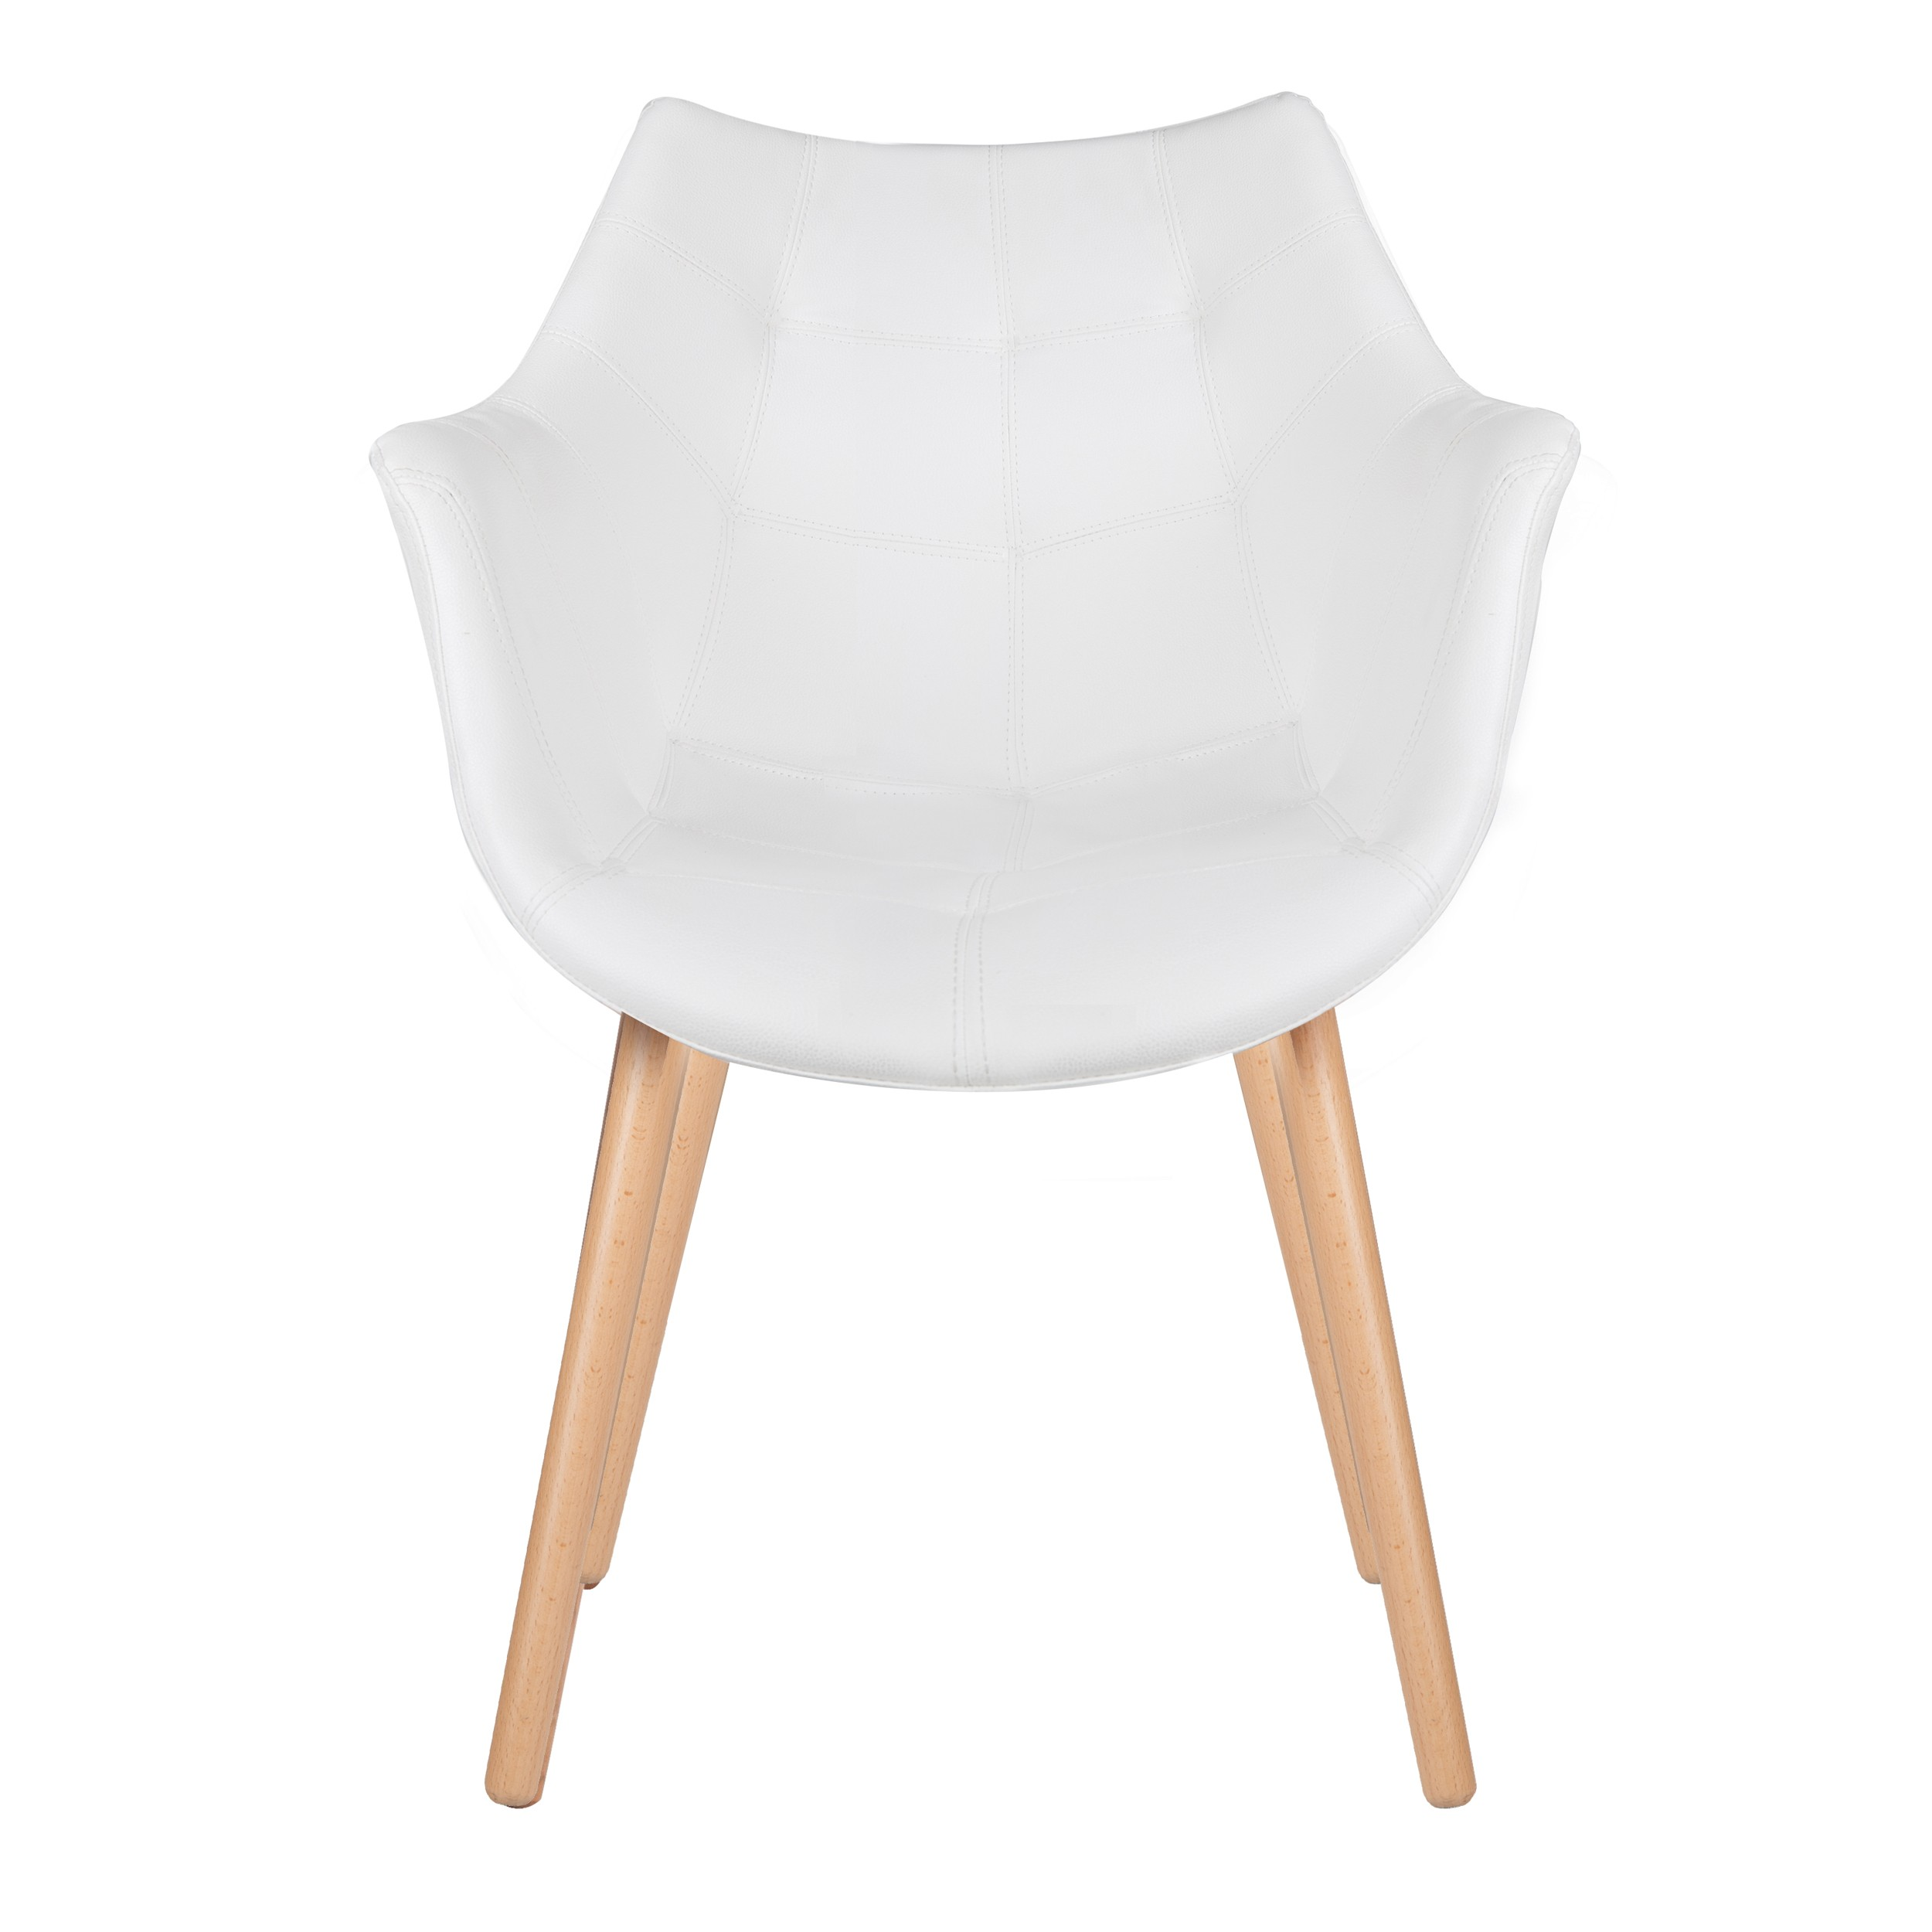 Chaise blanche et bois awesome chaises blanc et bois for Chaise bois et blanc